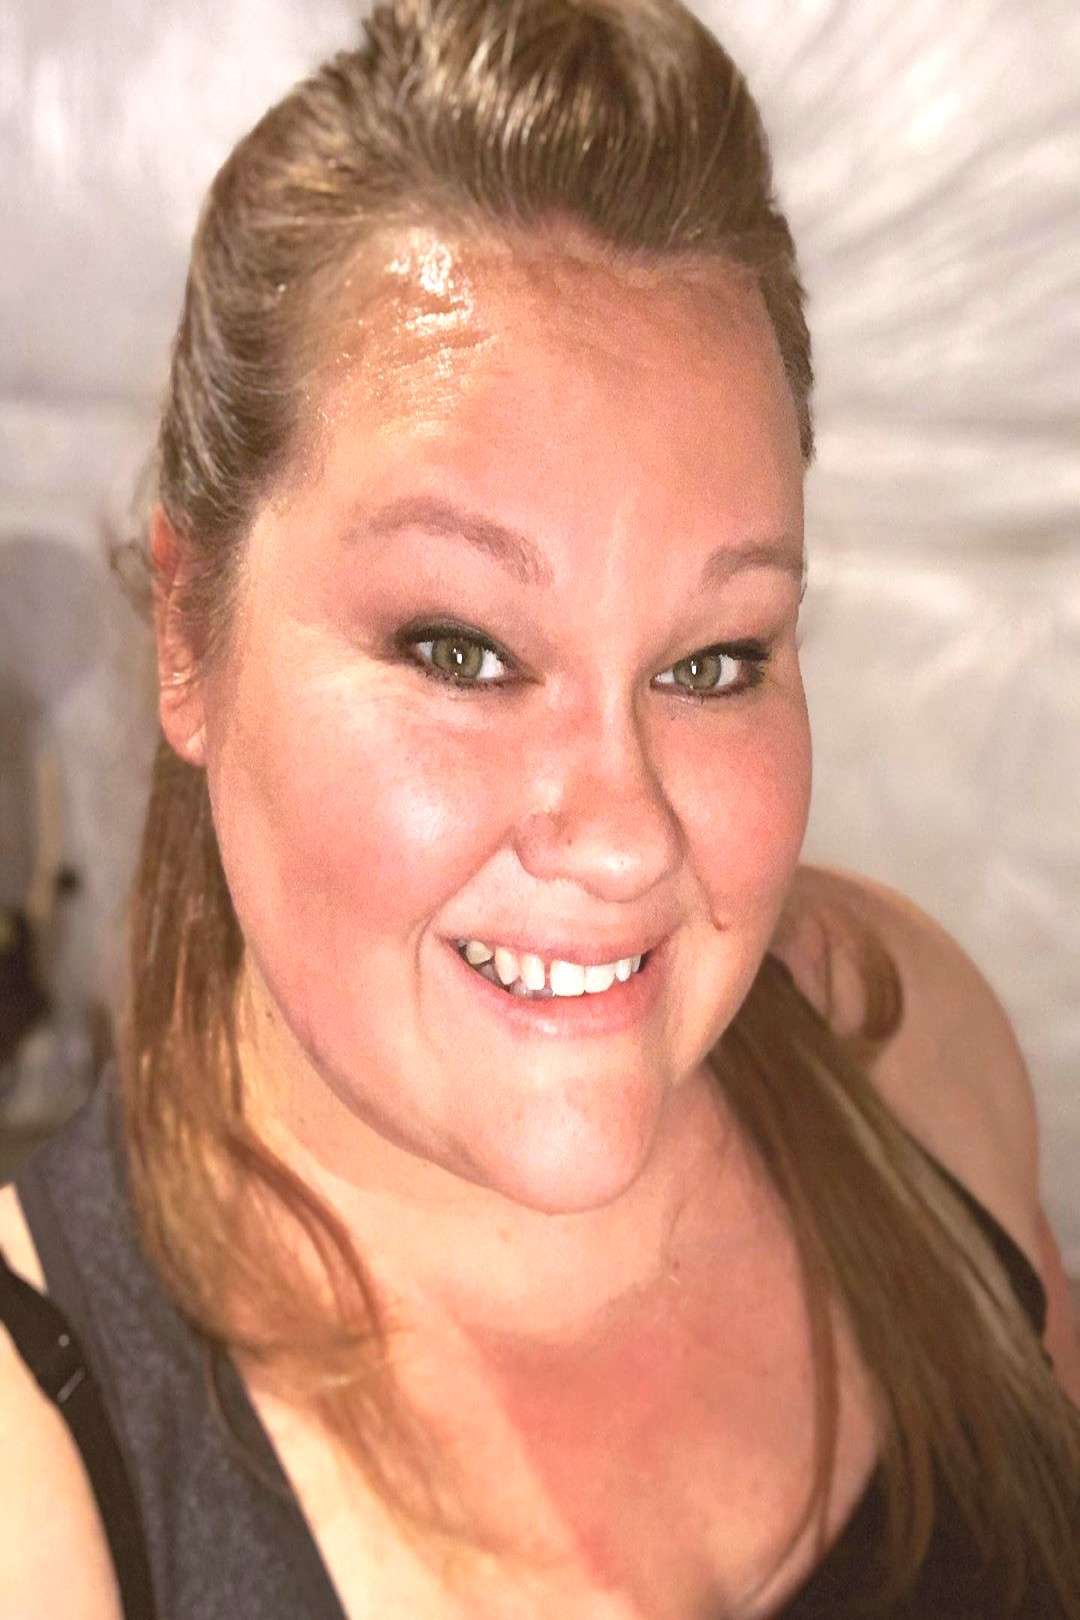 Aprilrocksweightloss on June 03 2020 1 person smiling closeup